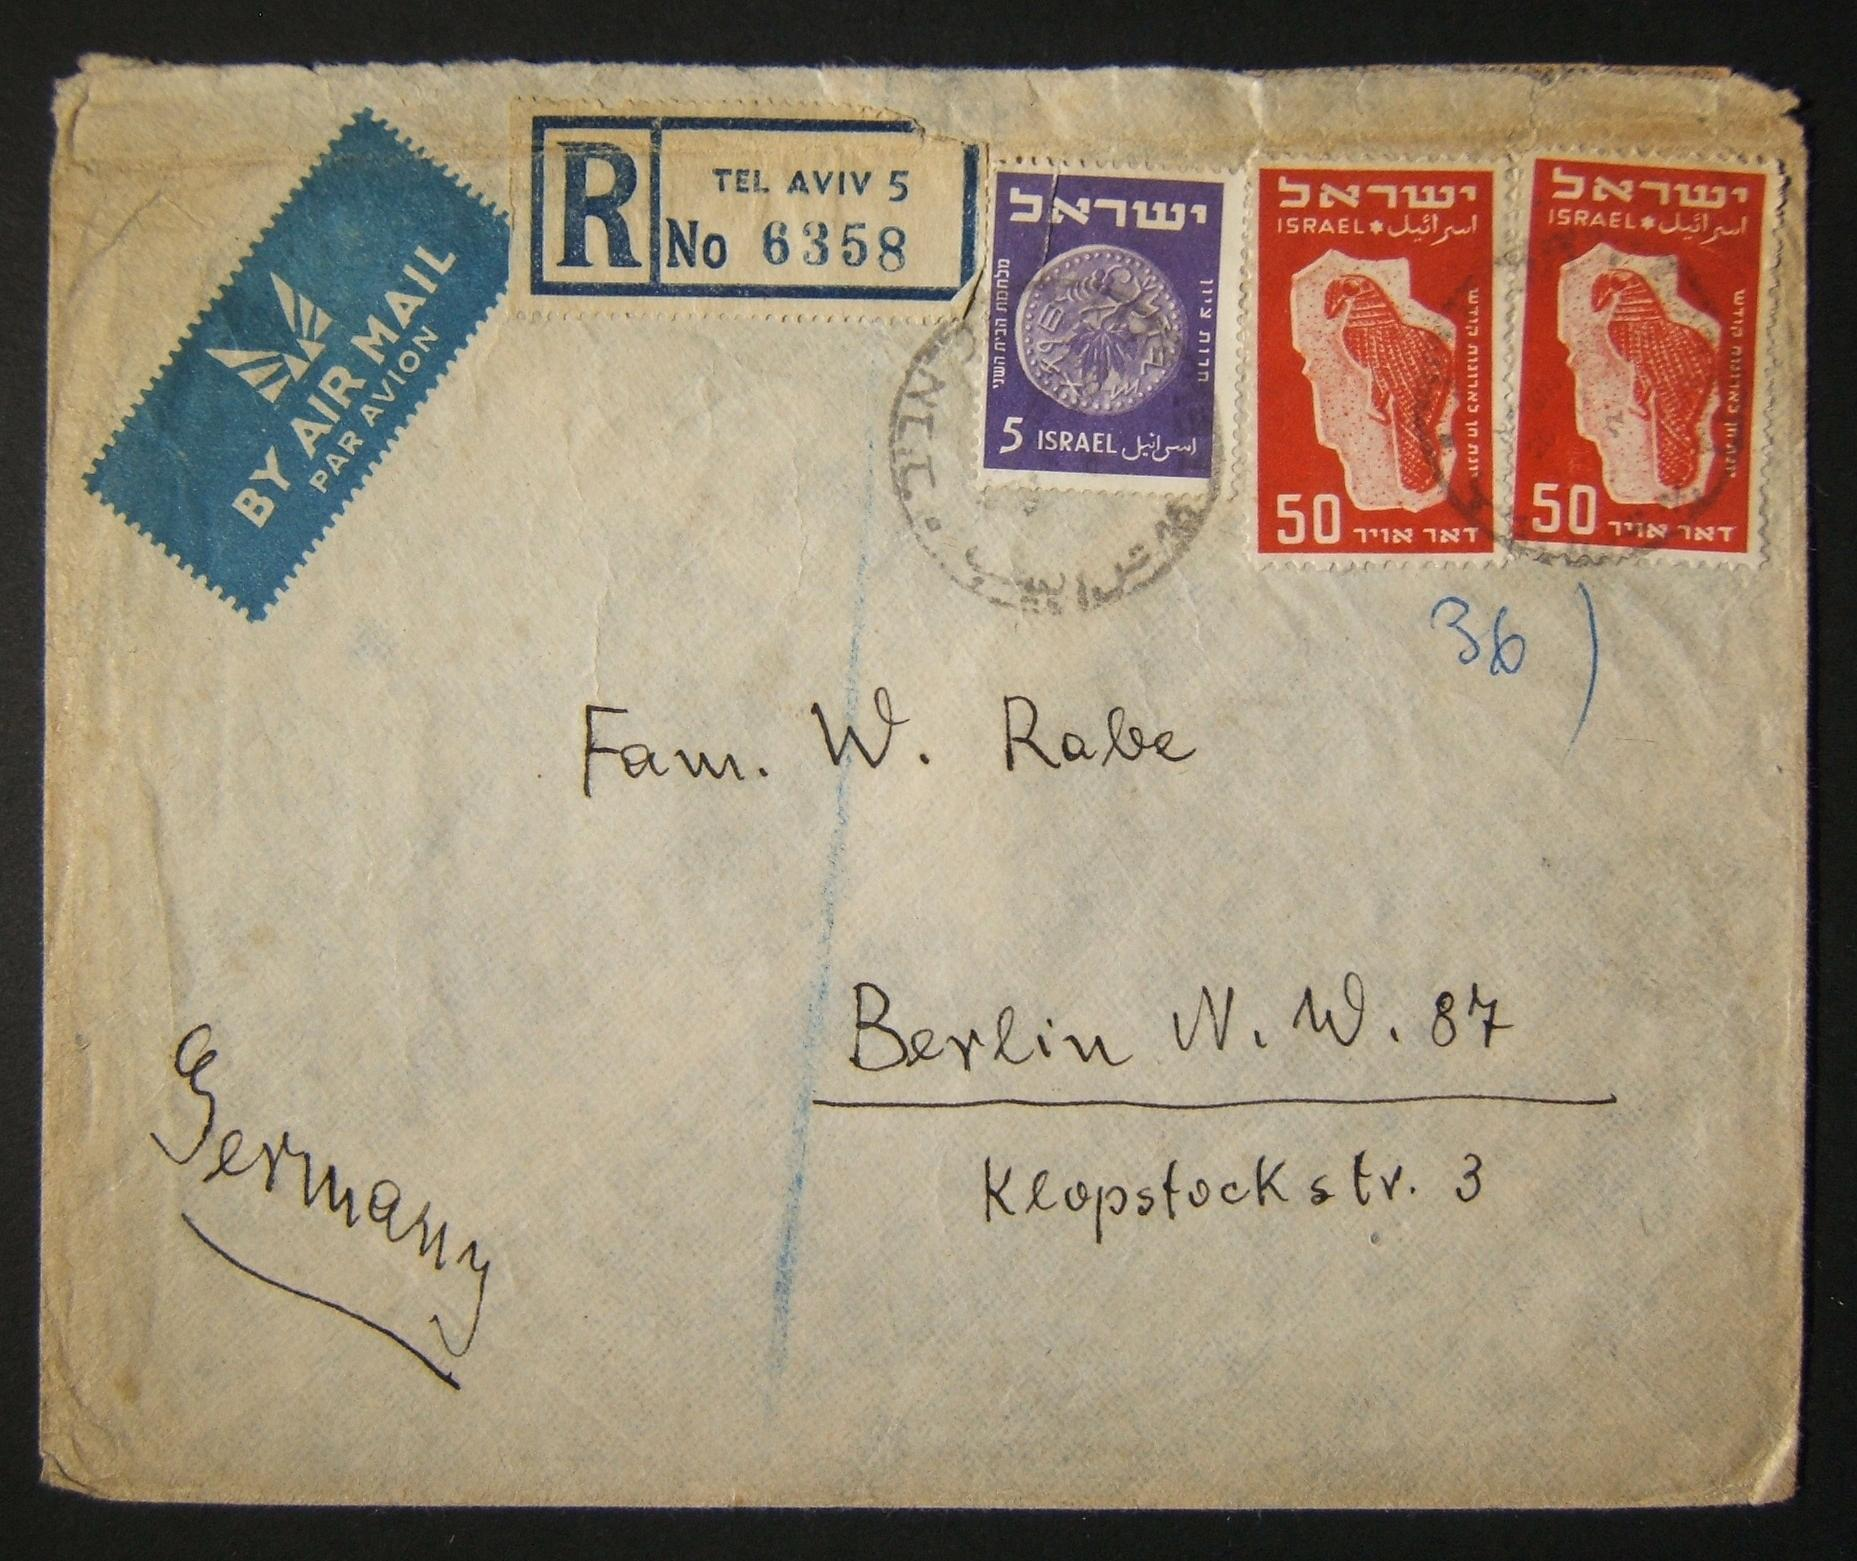 1950 1st airmail / PO's, rates & routes: 20-11-1950 airmail stationary registered commercial cover ex TLV to West BERLIN franked 105pr at the FA-2a period rate (40pr letter + 25pr